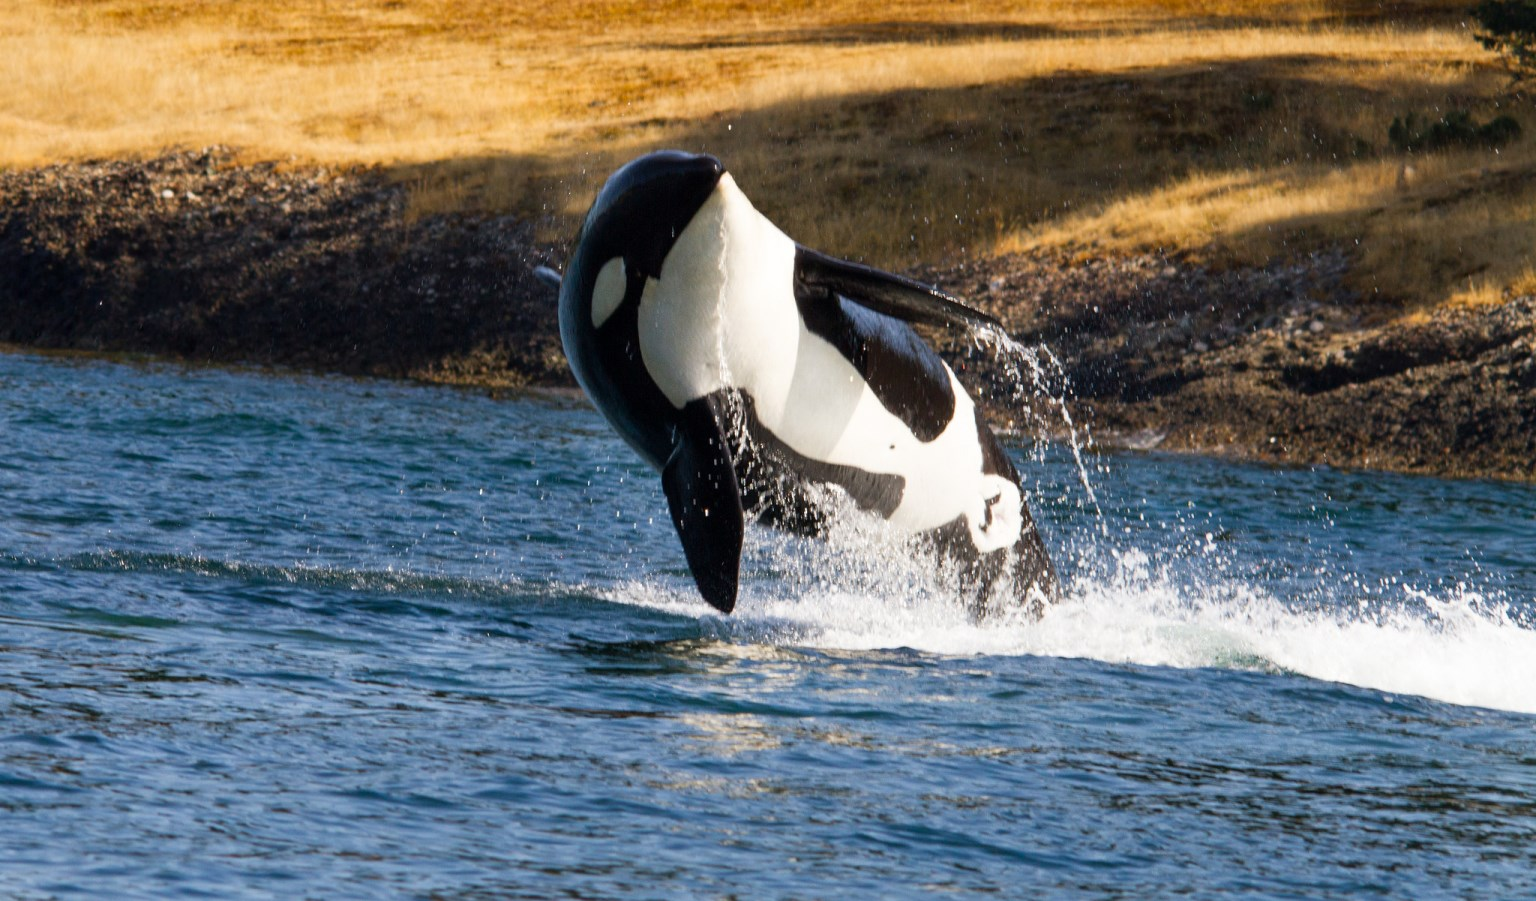 A breaching southern resident killer whale shows off its white belly.